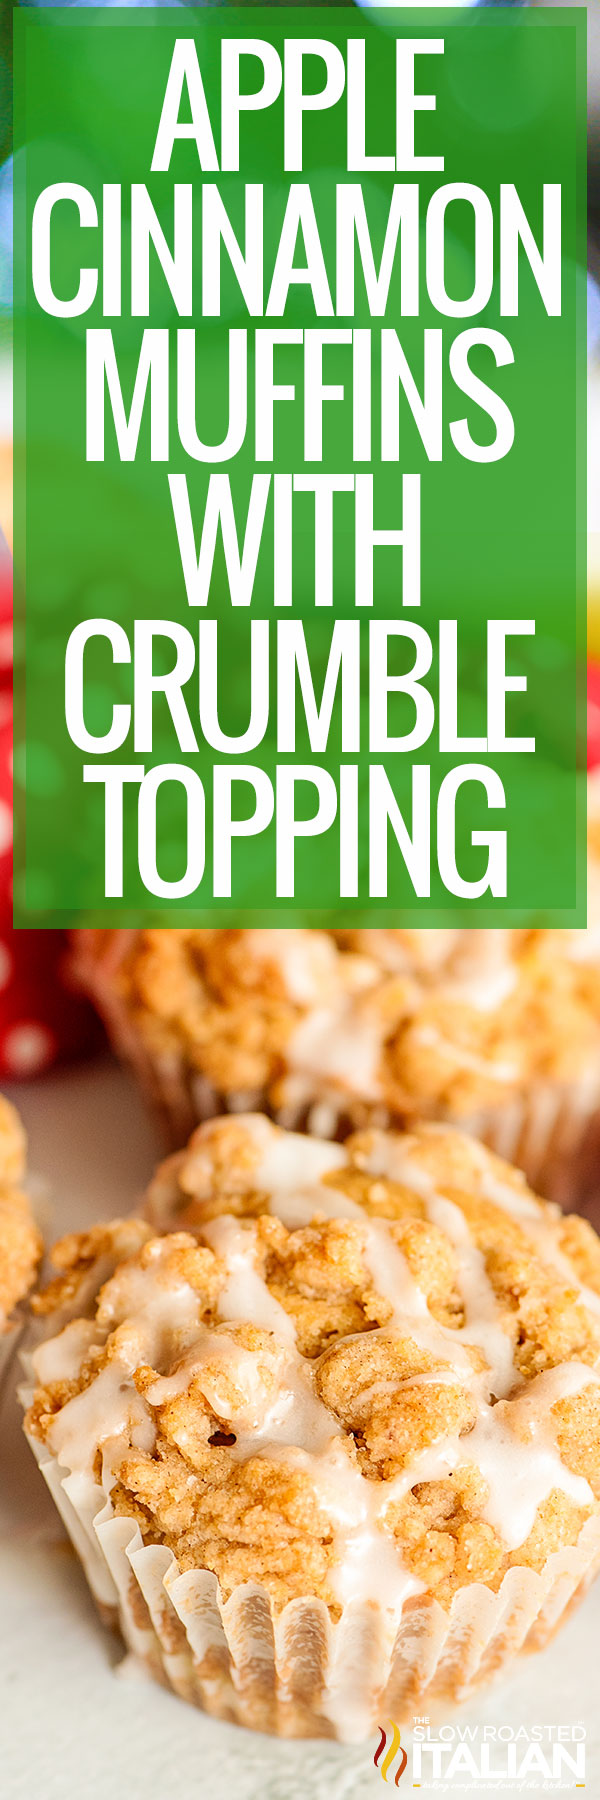 Title Text:  Long photo of Apple Cinnamon Muffins with Crumble Topping